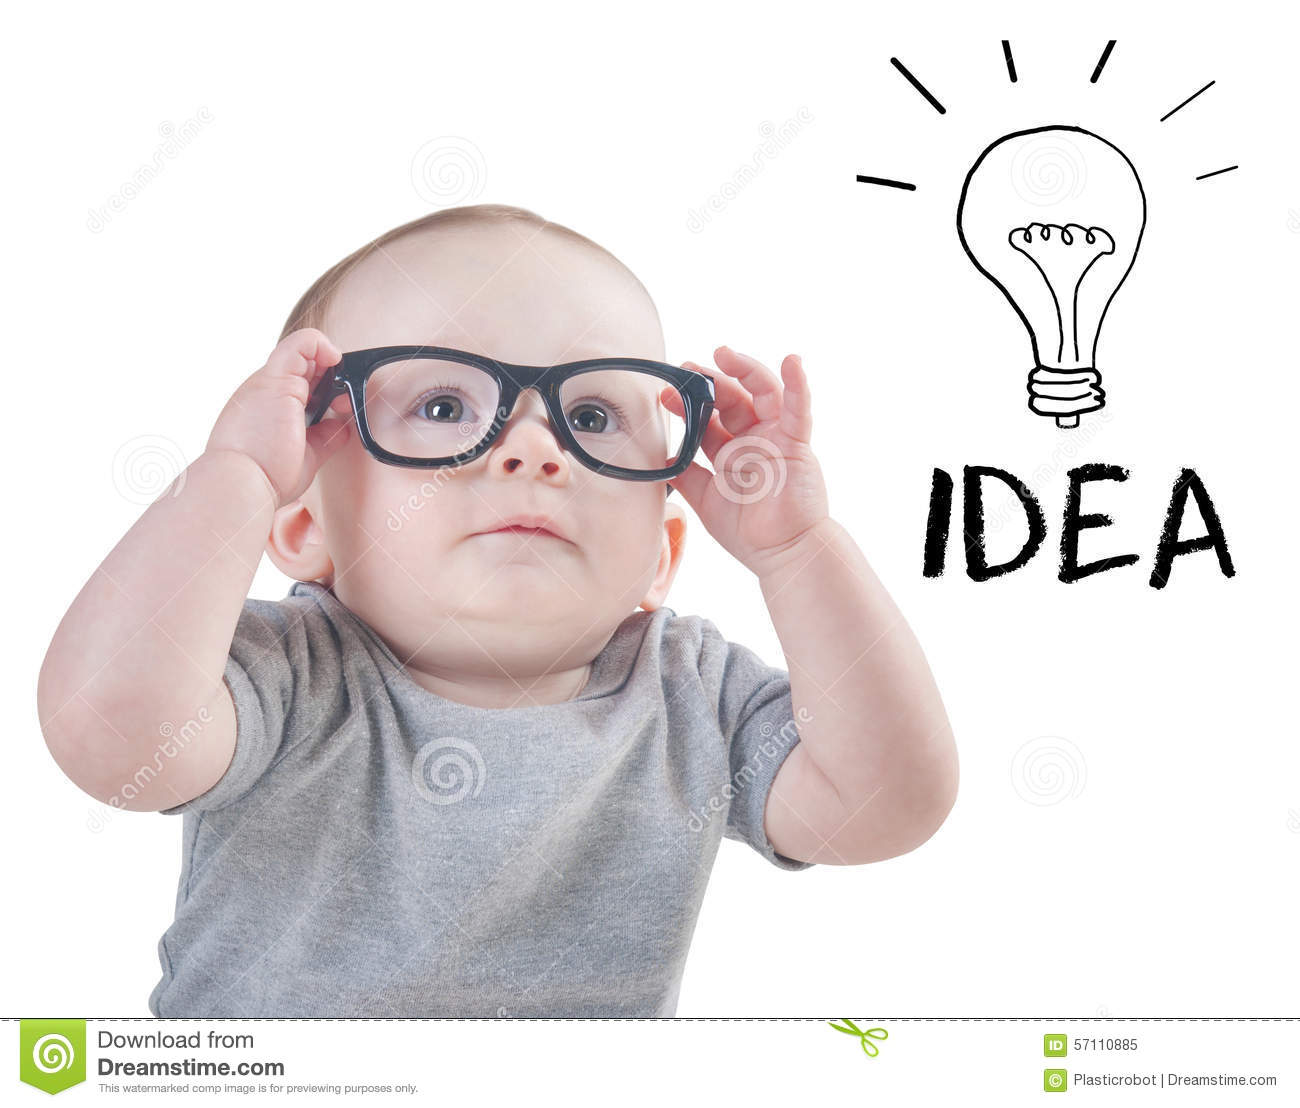 Smart Baby With Glasses Has An Idea Stock Photo - Image: 57110885